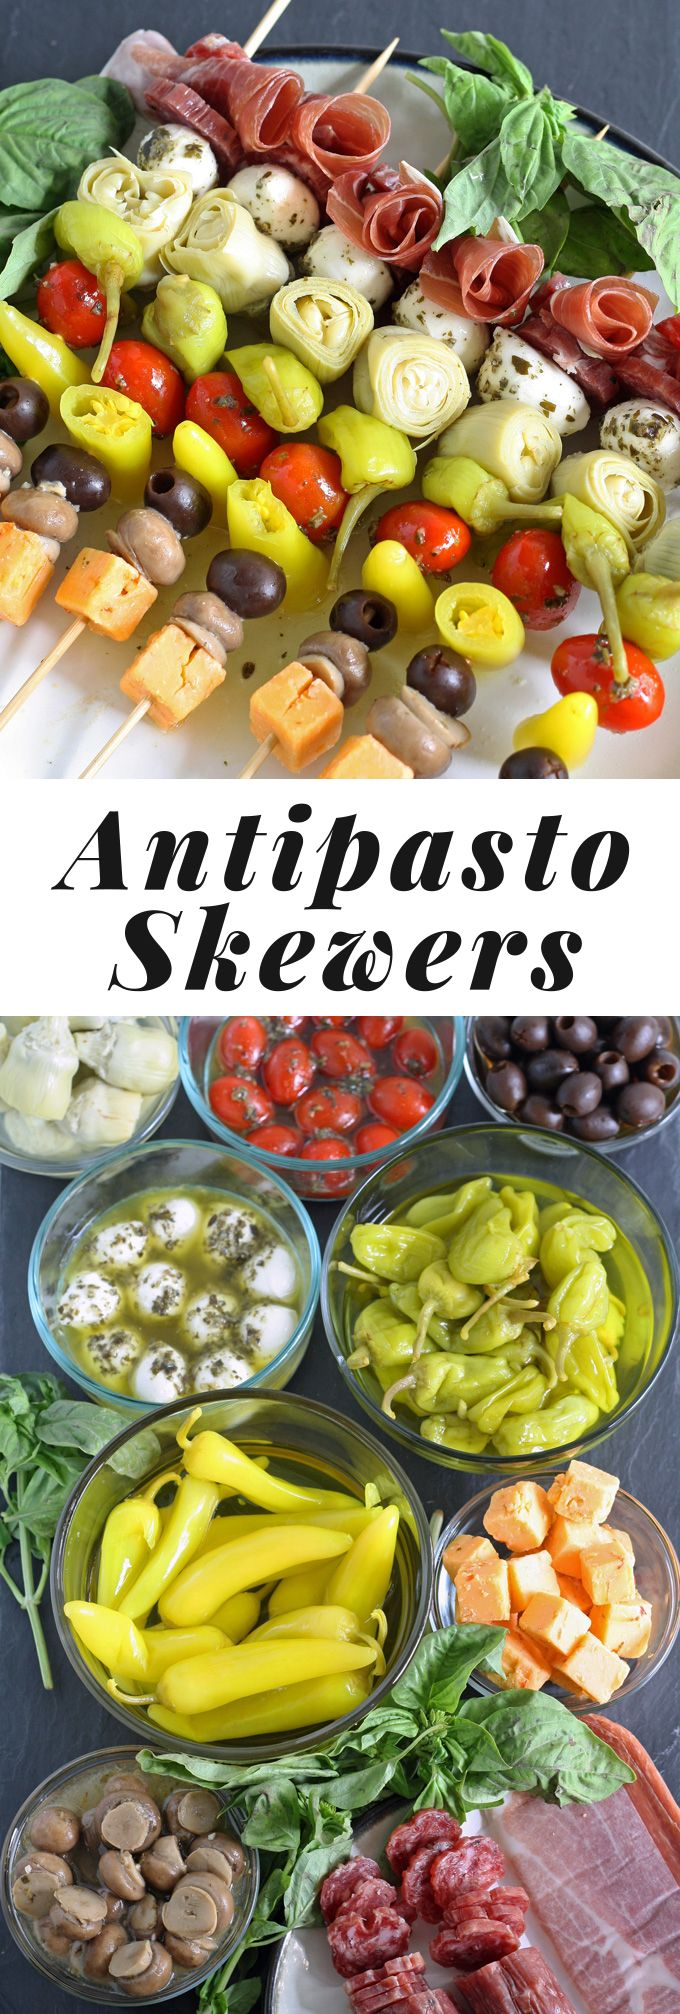 Antipasto Skewers recipe - the perfect easy party appetizer for an outdoor barbecue! | game day | tailgating | football | party | basketball | super bowl | holiday